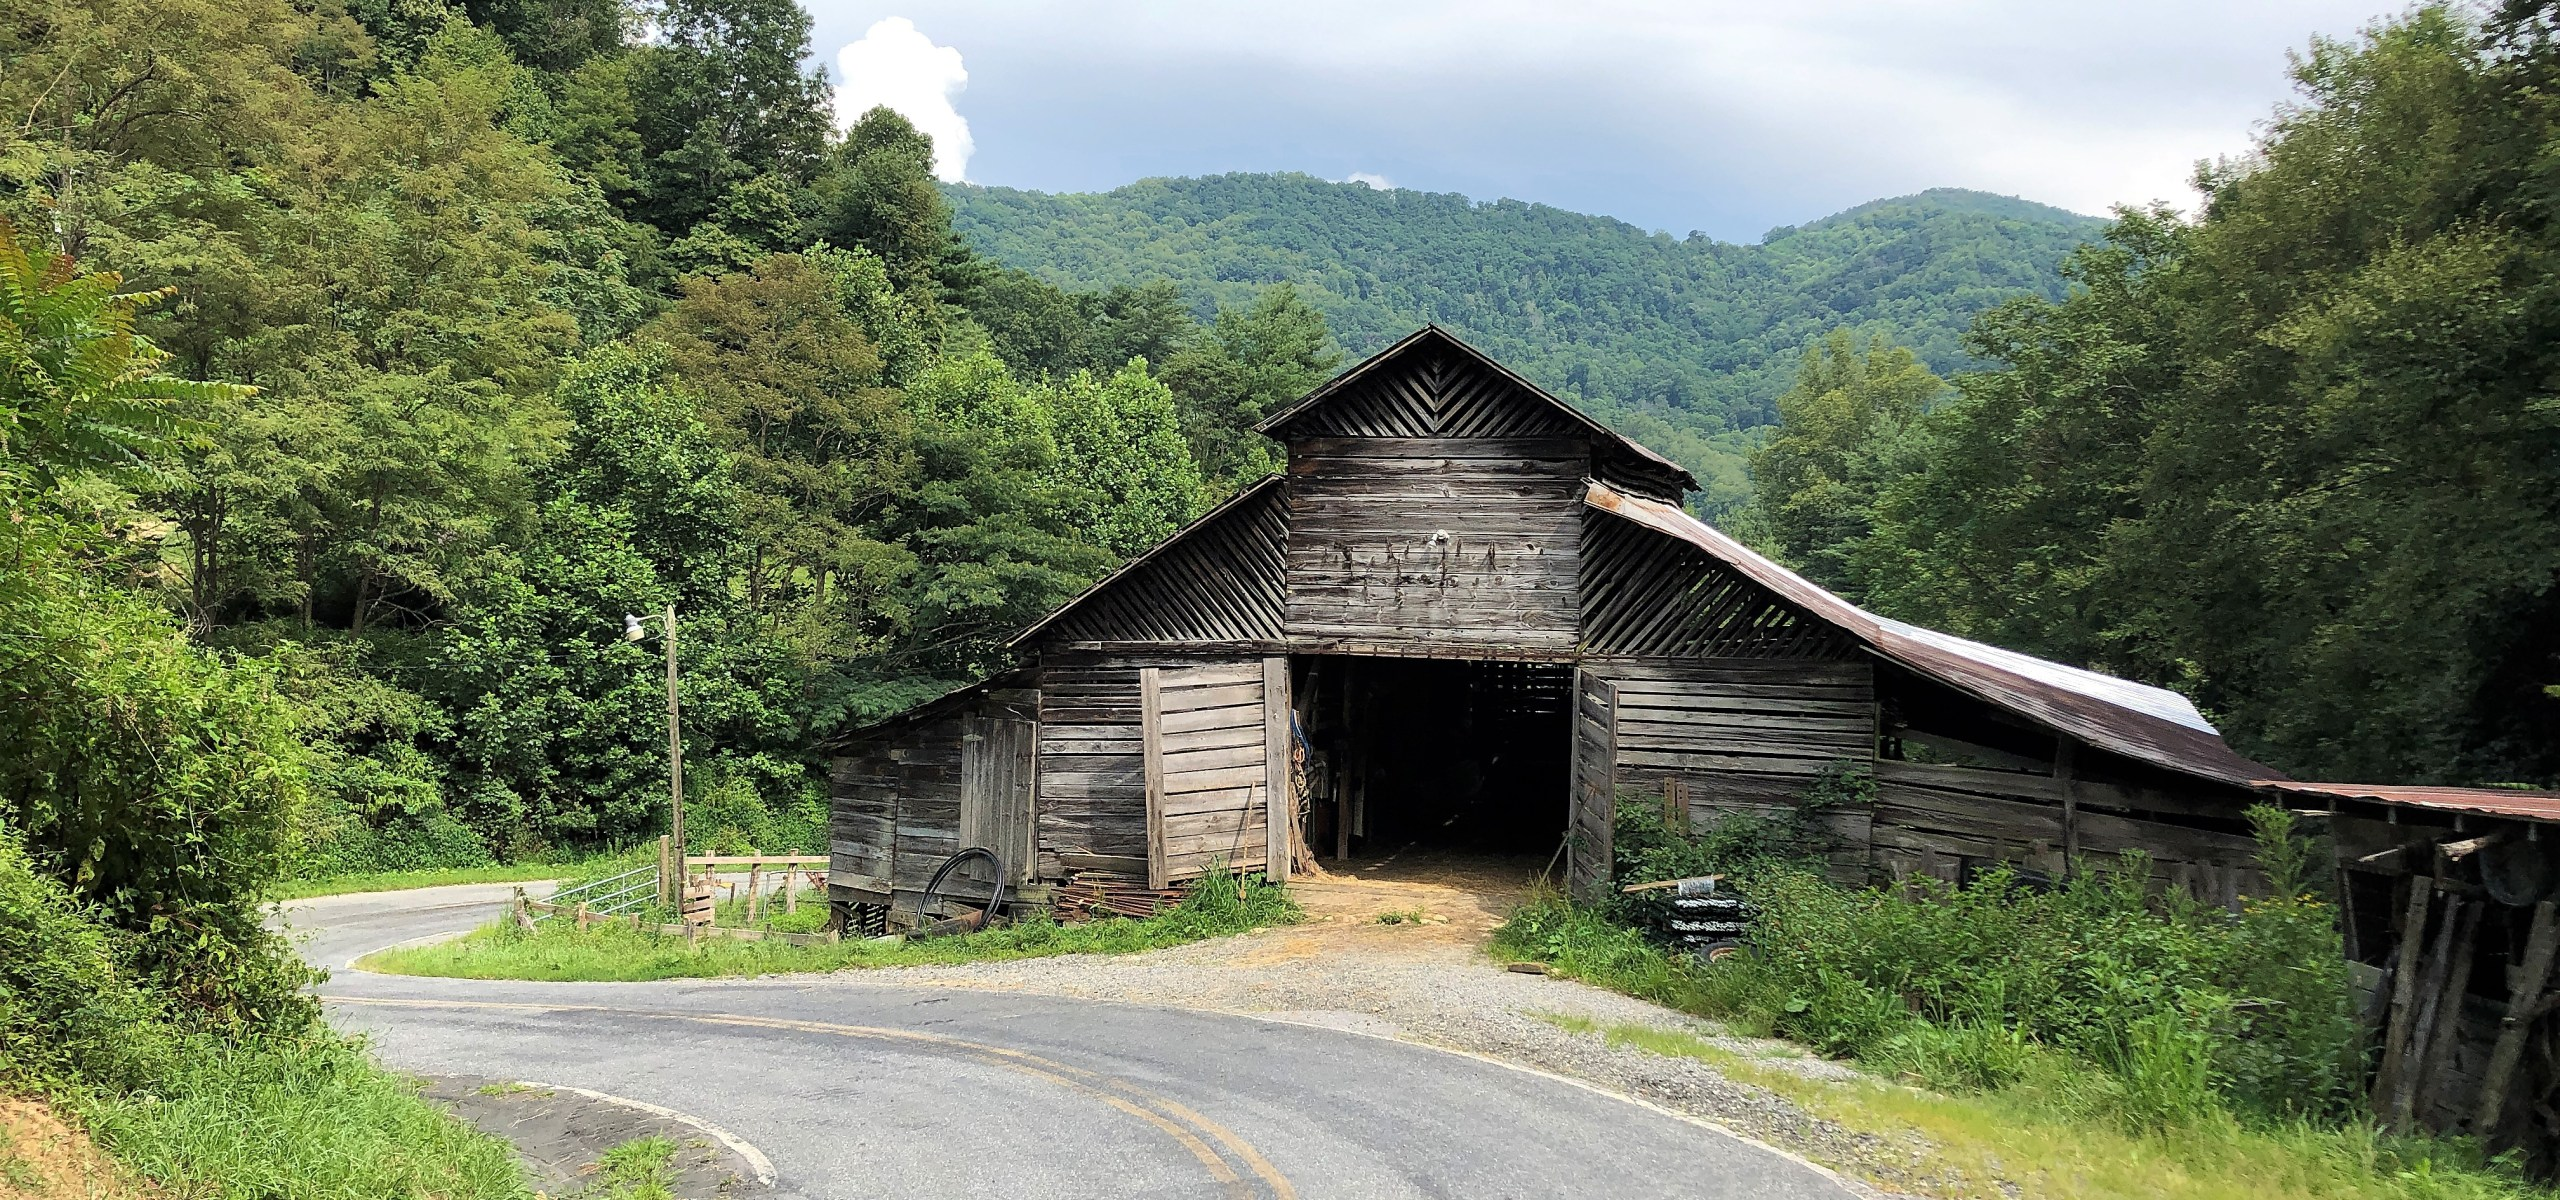 Historic Wild Barn, Madison County, NC